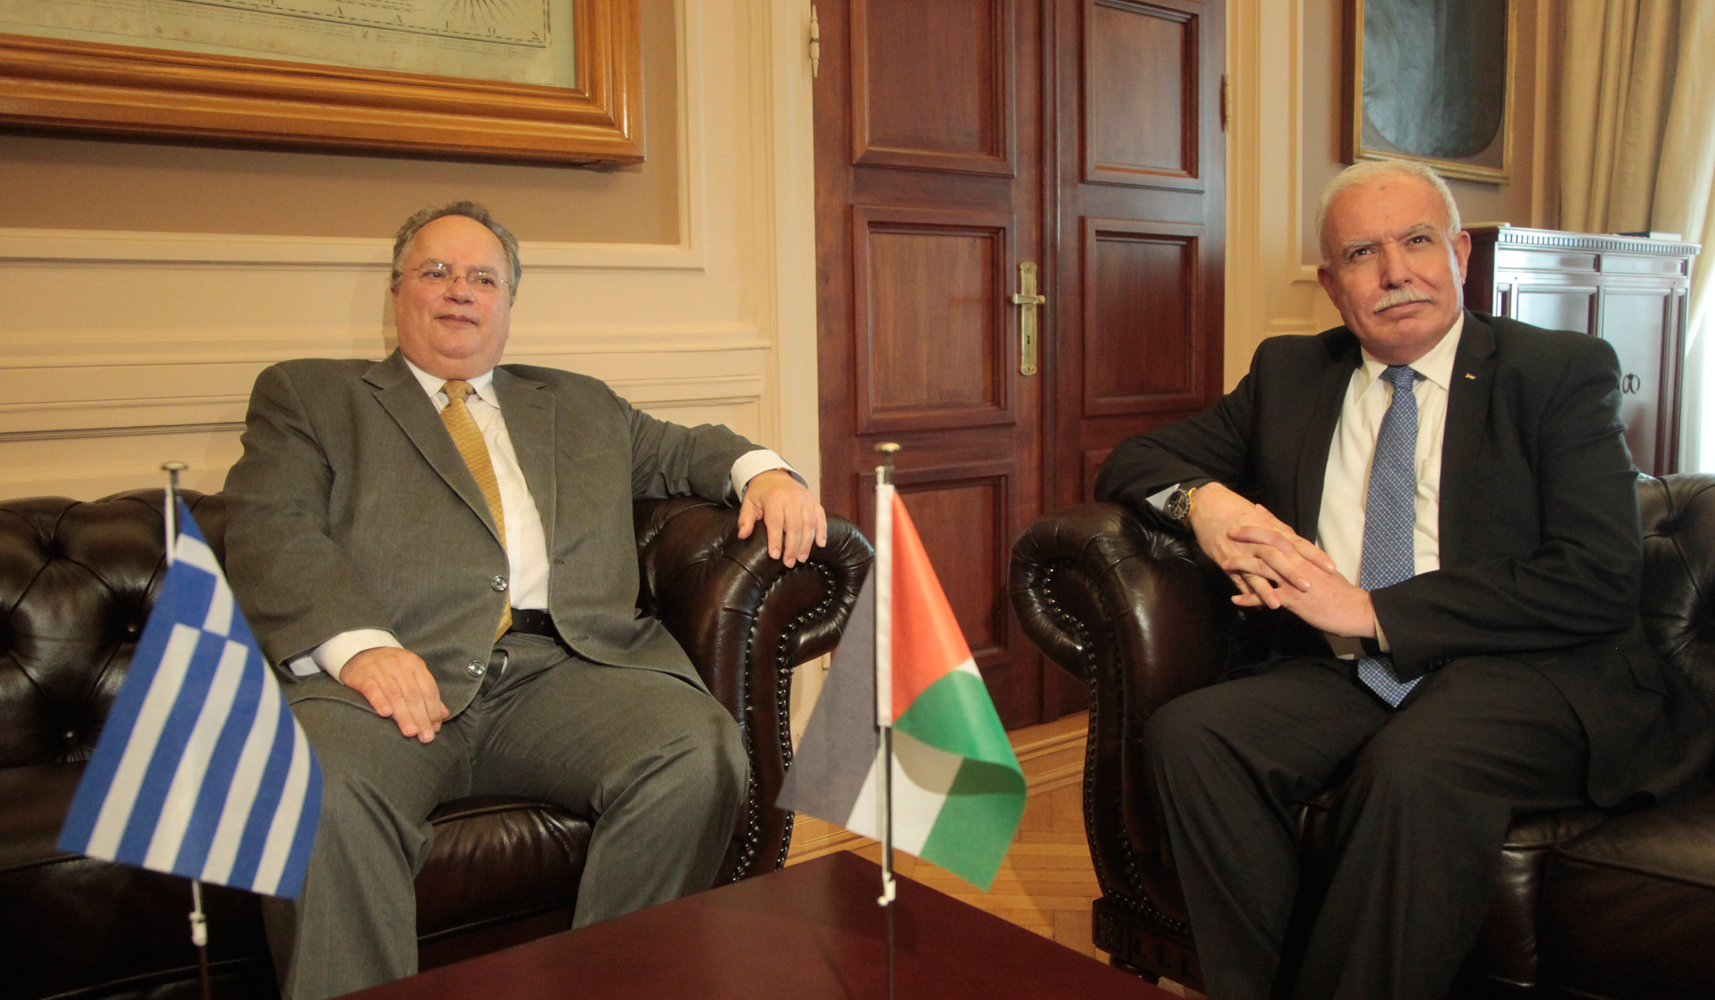 Kotzias: Greece has always supported the Palestinian cause